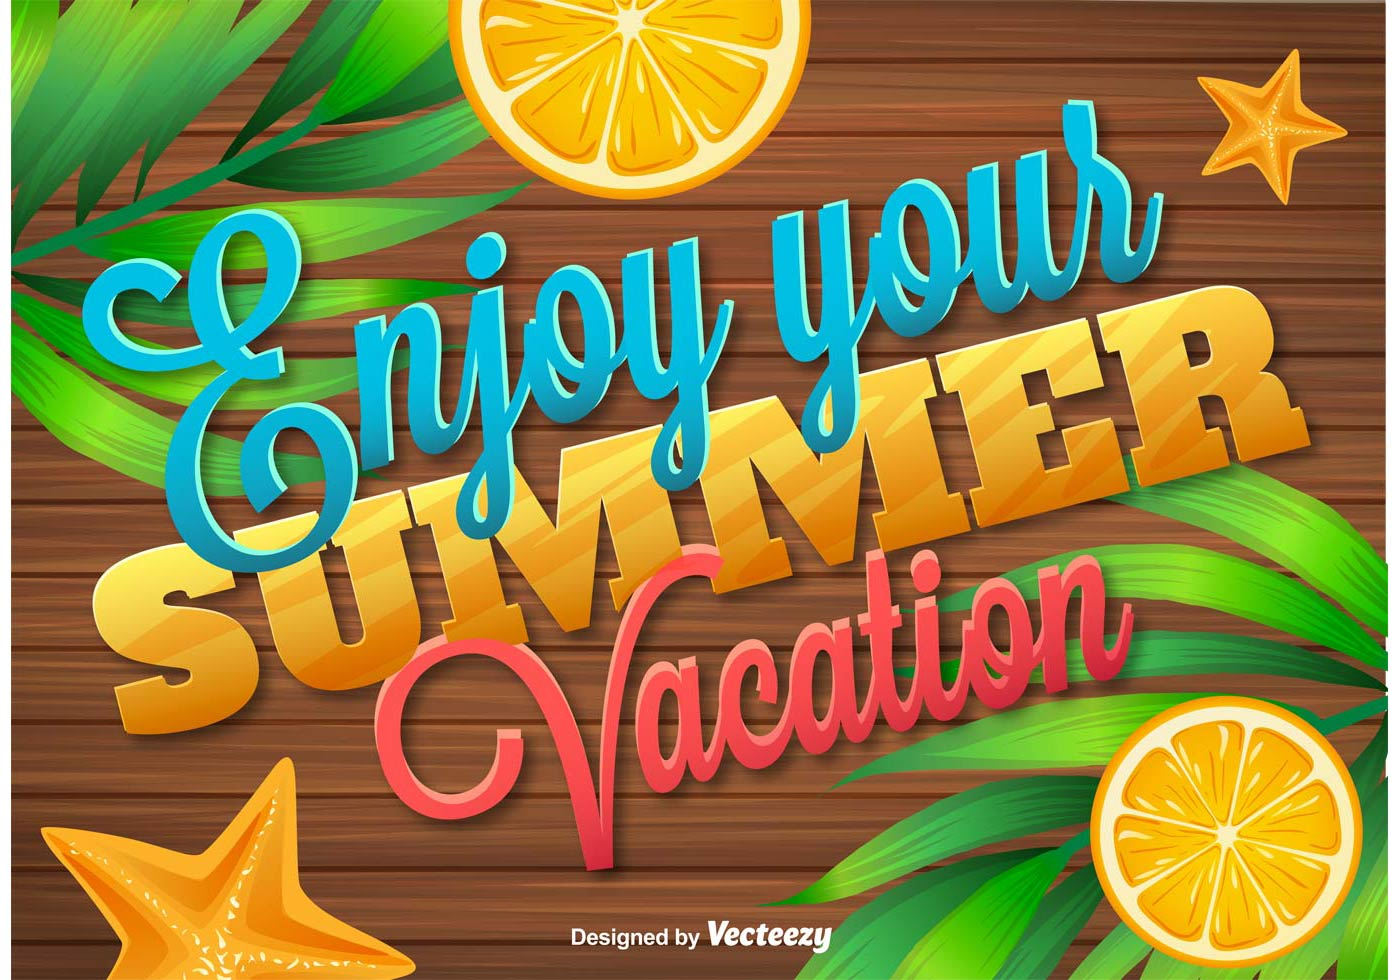 Enjoy Tropical Summer Holidays Backgrounds Vector 04 Free: Enjoy Summer Vacations Wooden Background